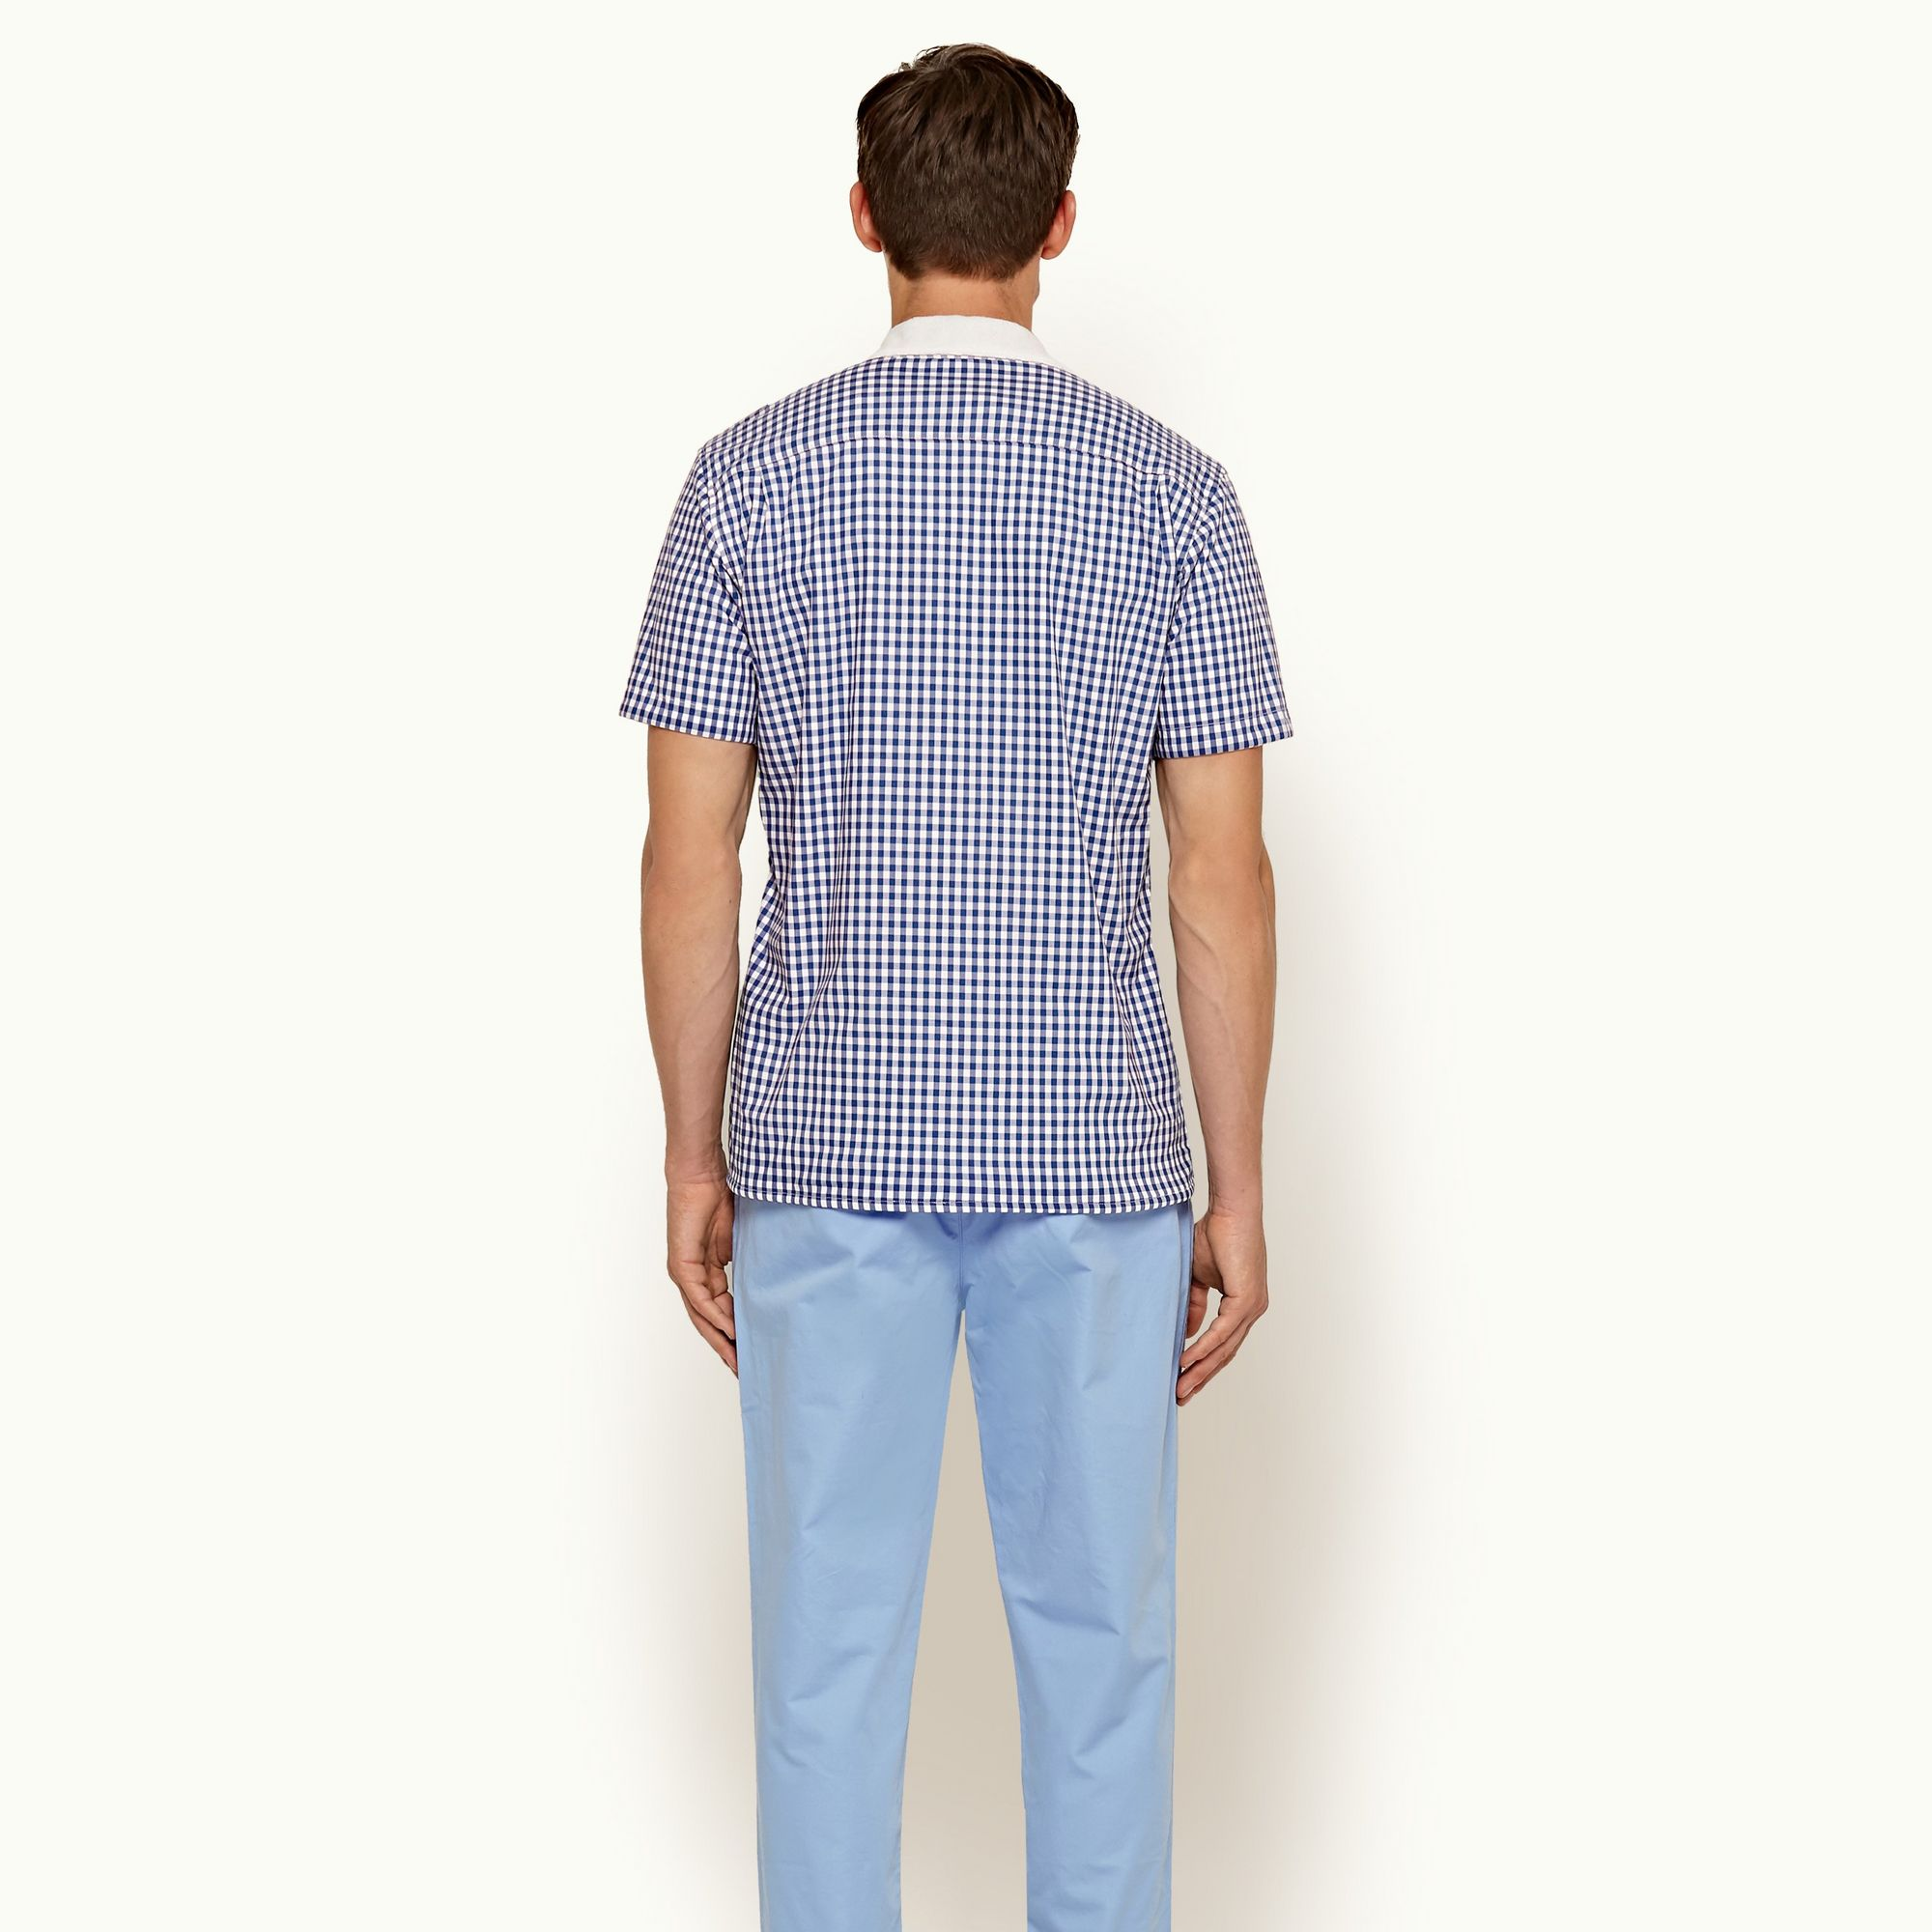 Orlebar Brown Thunderball Gingham Shirt